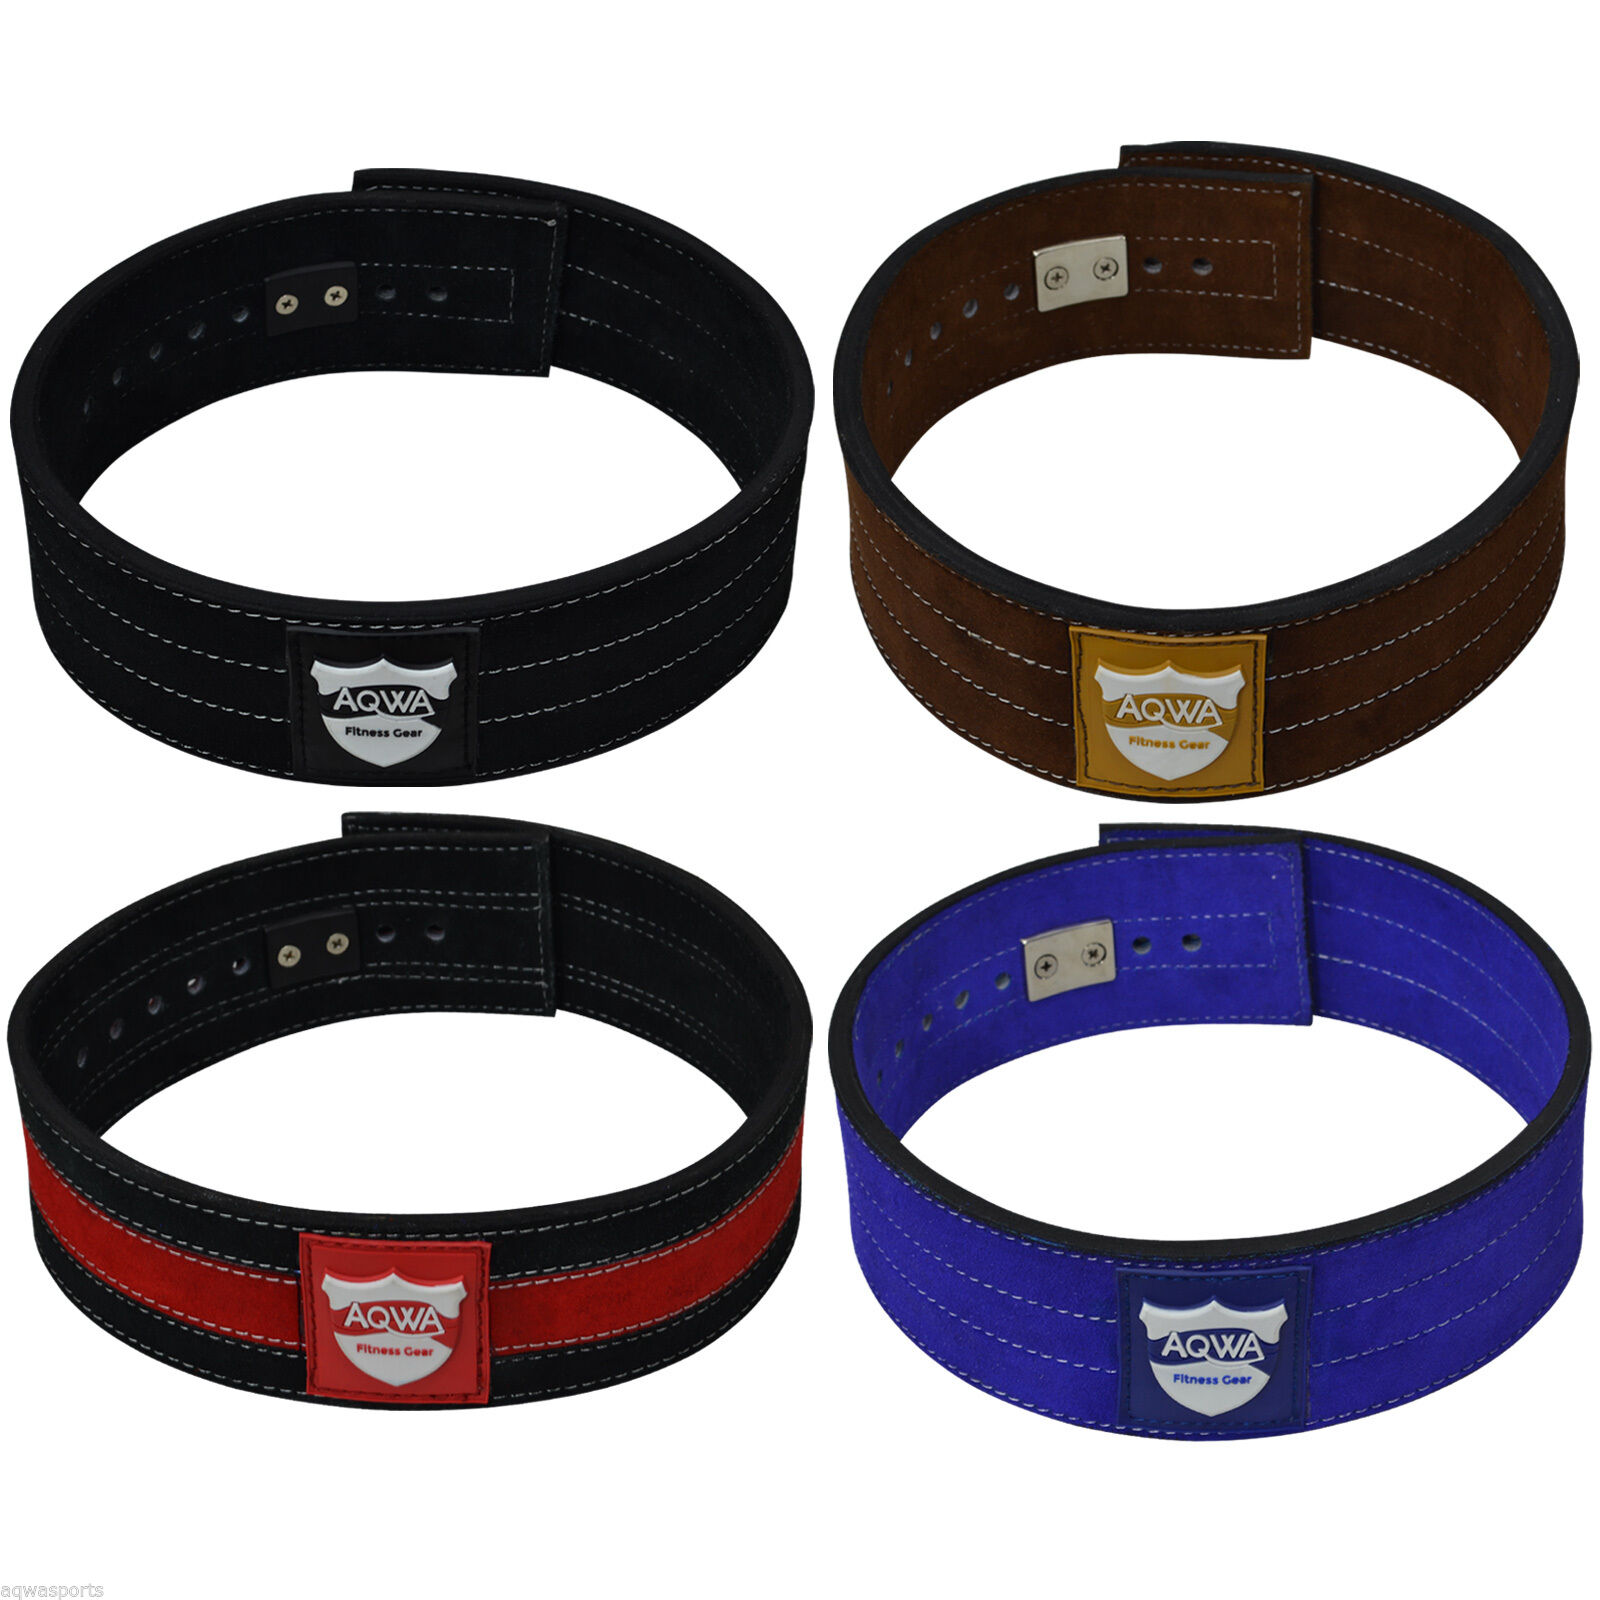 AQWA Weight Power Lifting Leather Lever Pro Belt Gym Training Powerlifting Strap